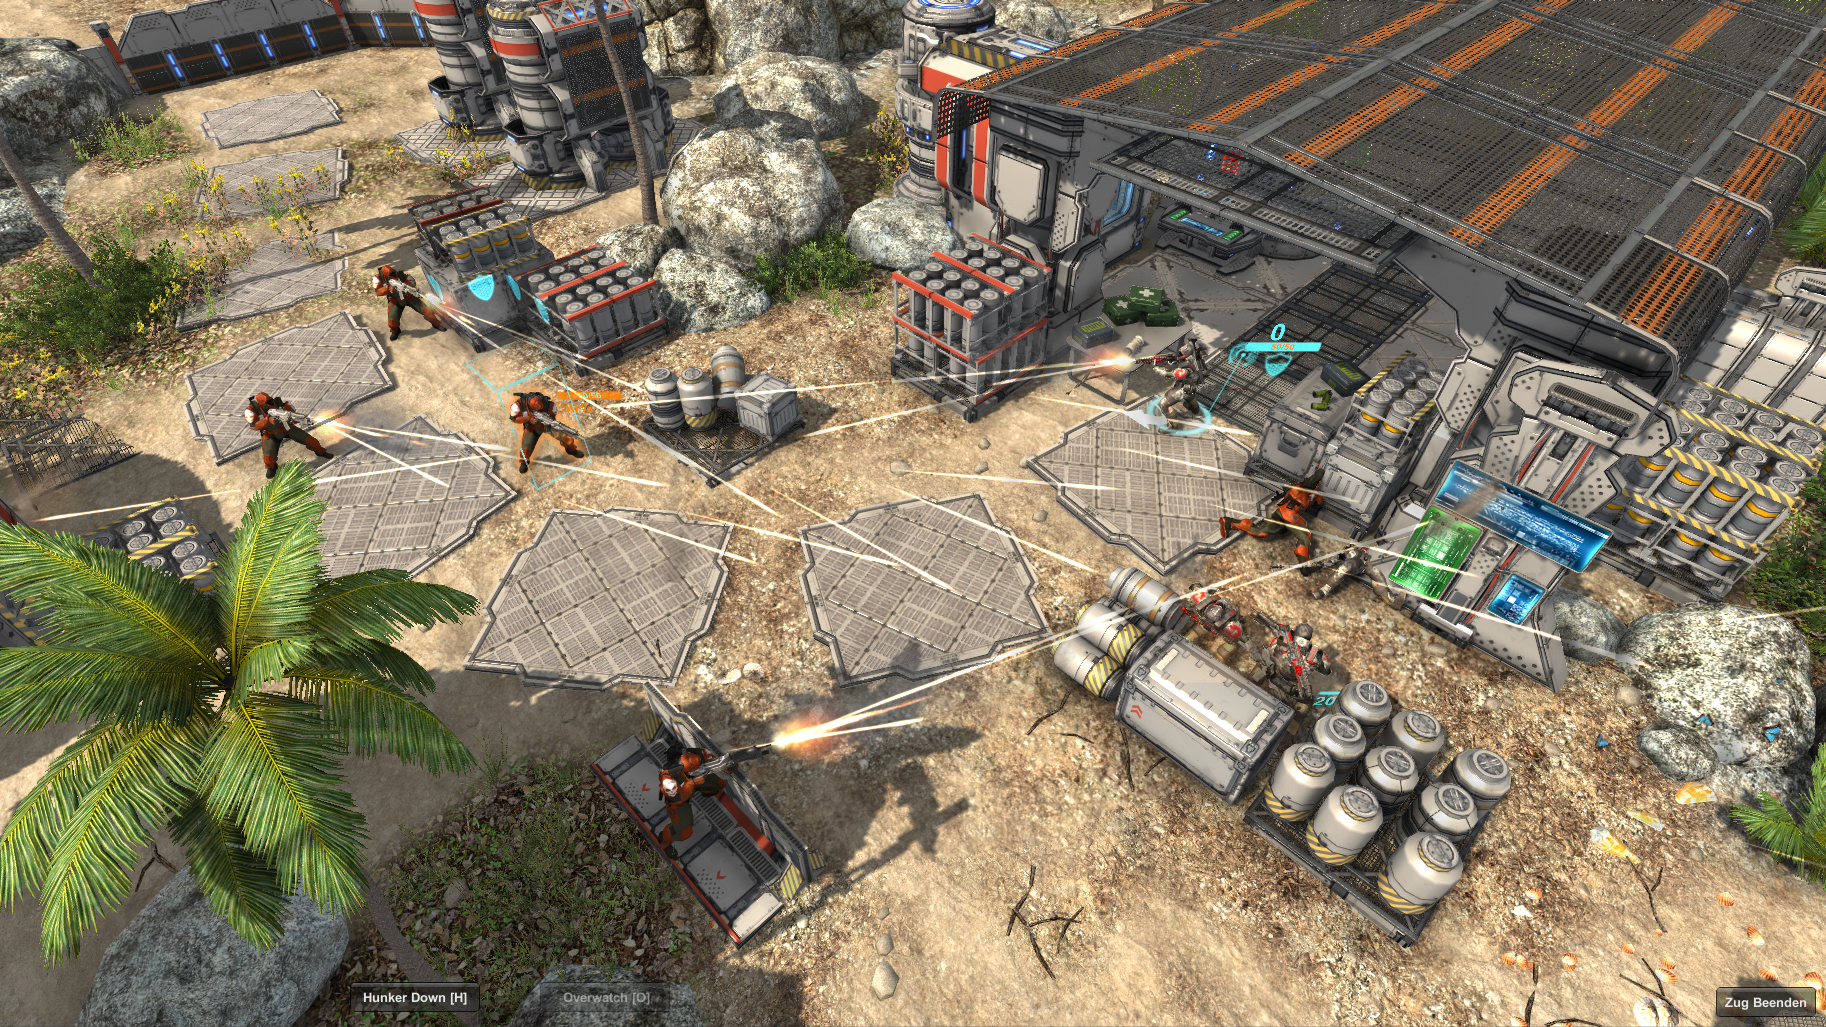 X-Com And Jagged Alliance Inspired Shooter Coming To PC